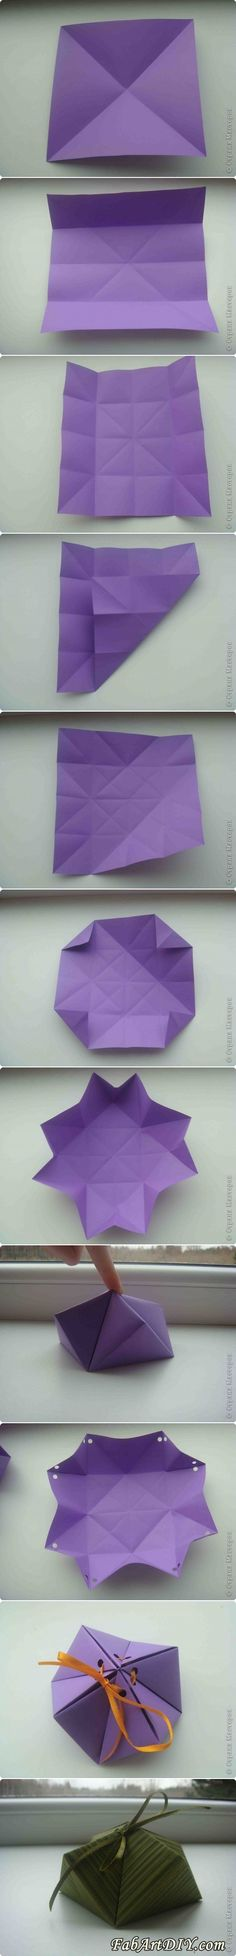 How to DIY Paper Origami Gift Box | www.FabArtDIY.com%0ALIKE Us on Facebook ==> https://www.facebook.com/FabArtDIY